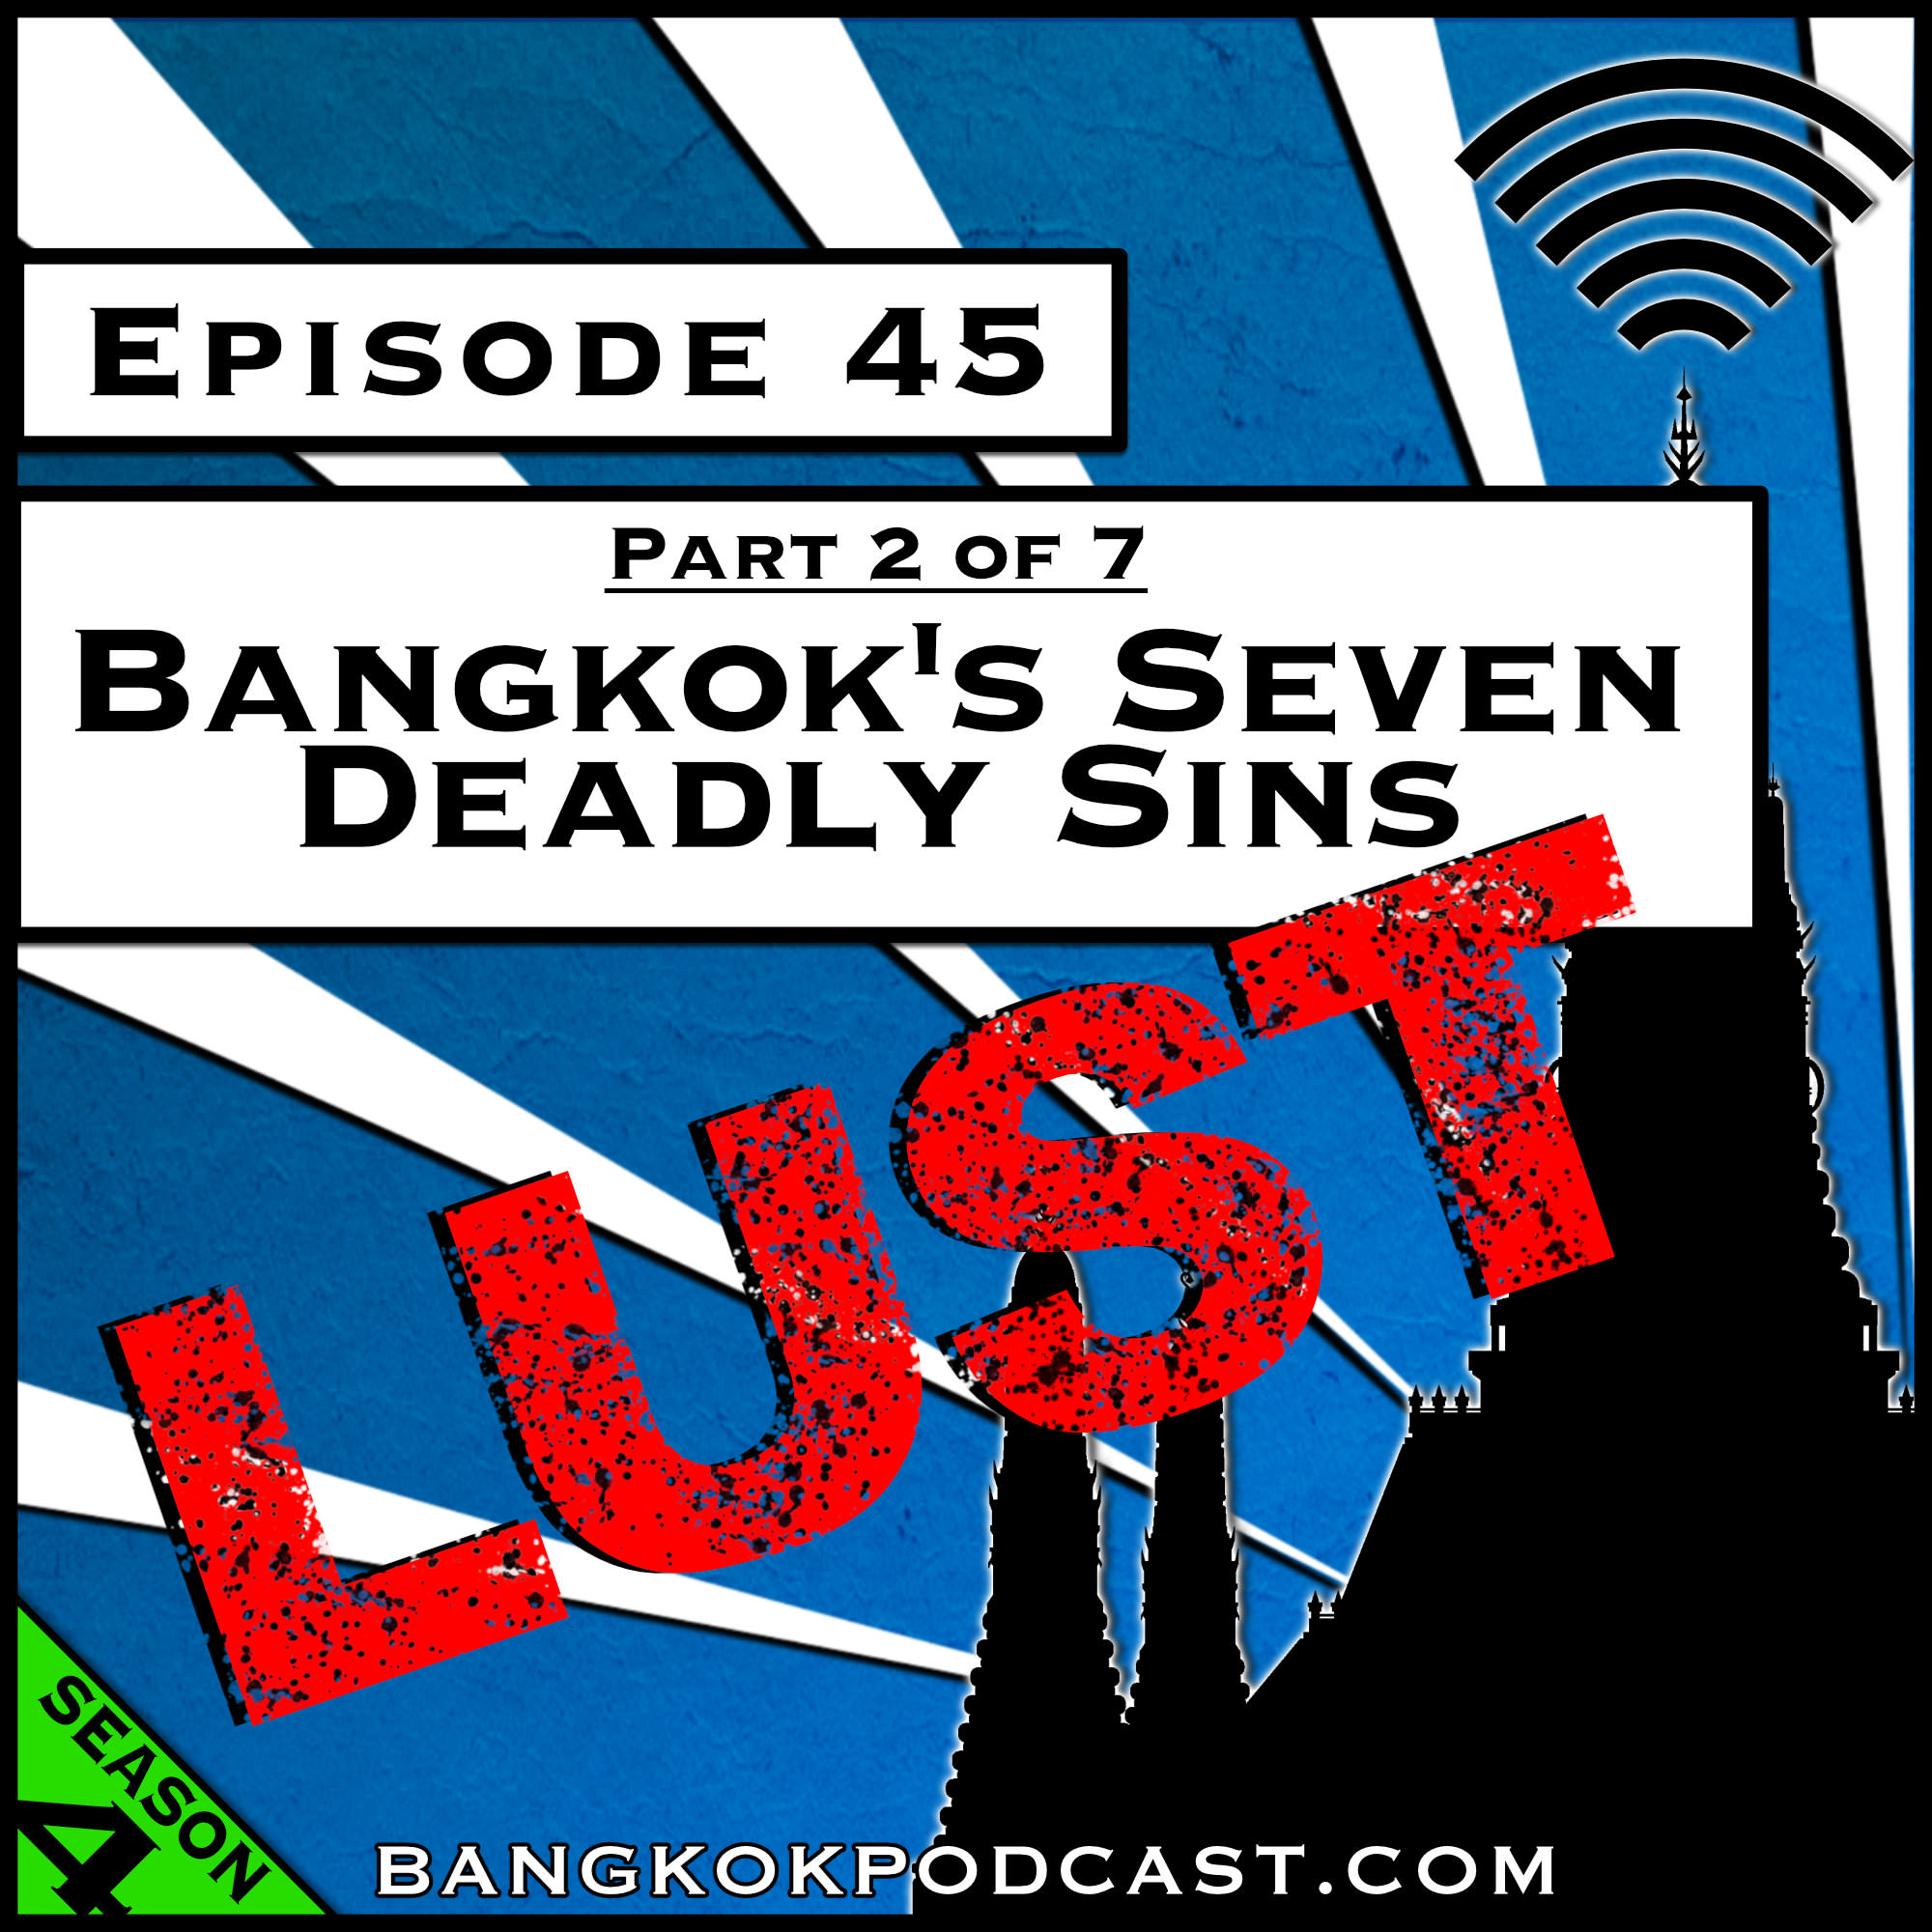 Bangkok's Seven Deadly Sins: Lust [Season 4, Episode 45]